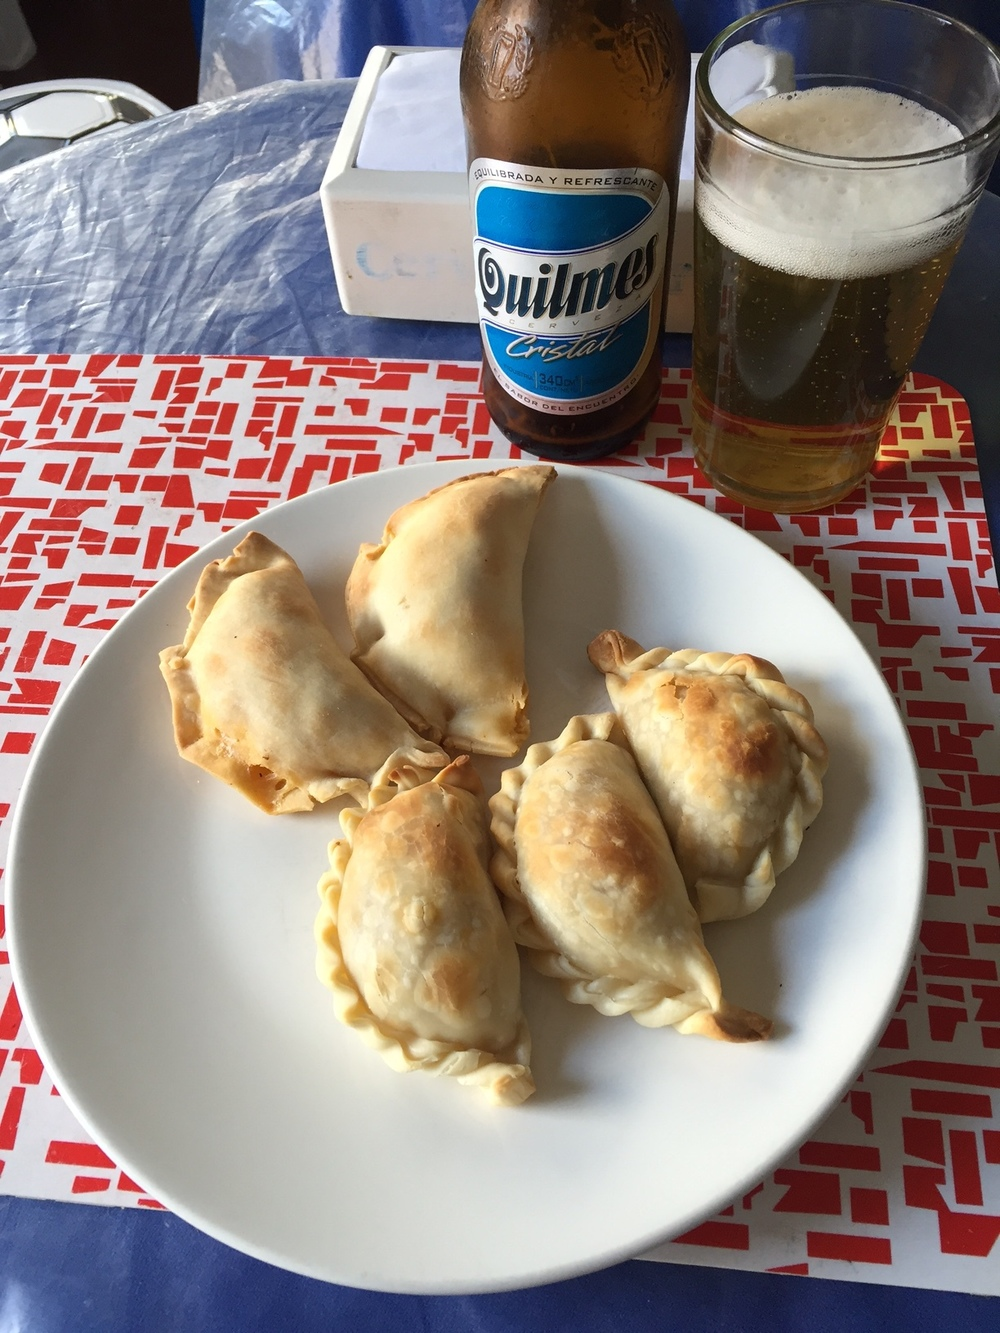 Empanadas. A cheap, goto meal for locals and travelers alike.